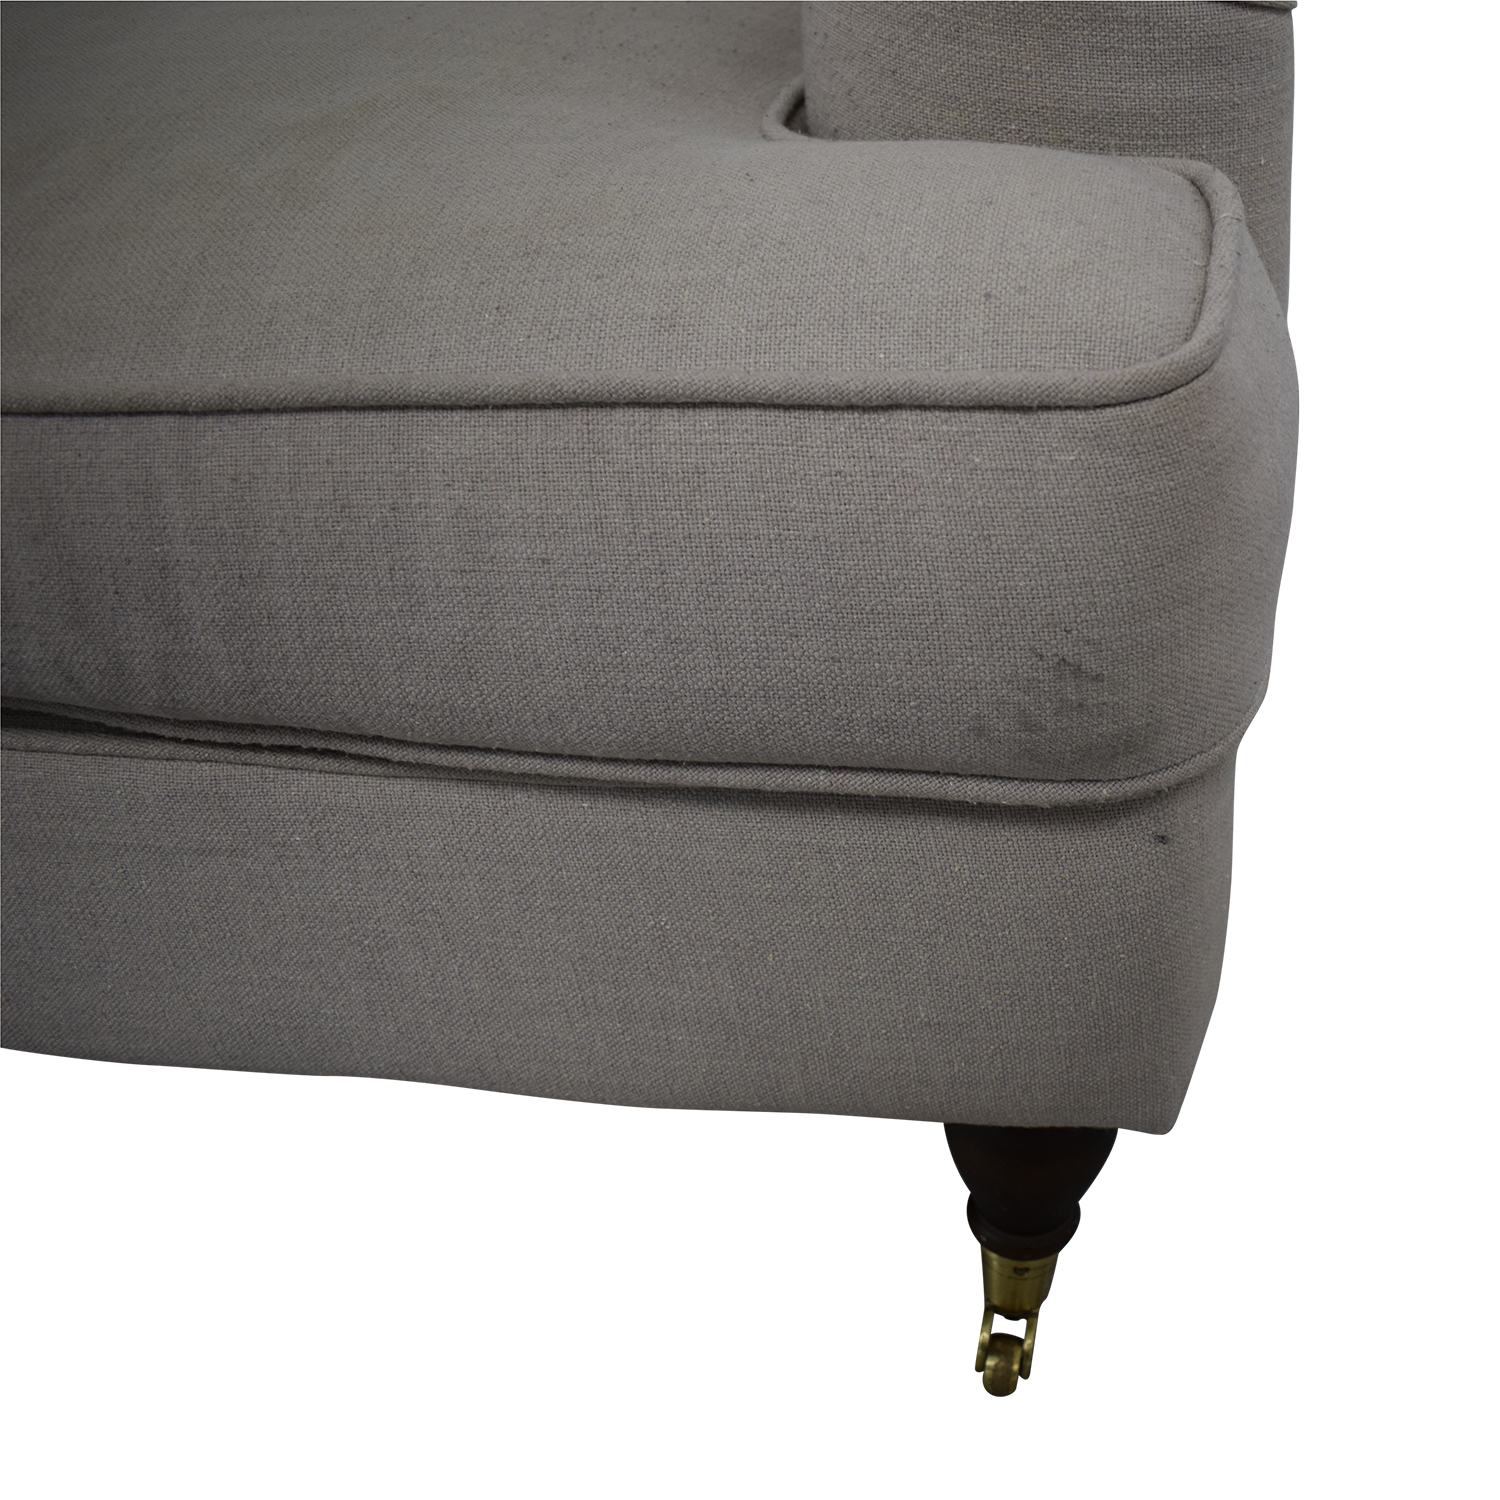 Safavieh Safavieh Roll Arm Sofa nyc